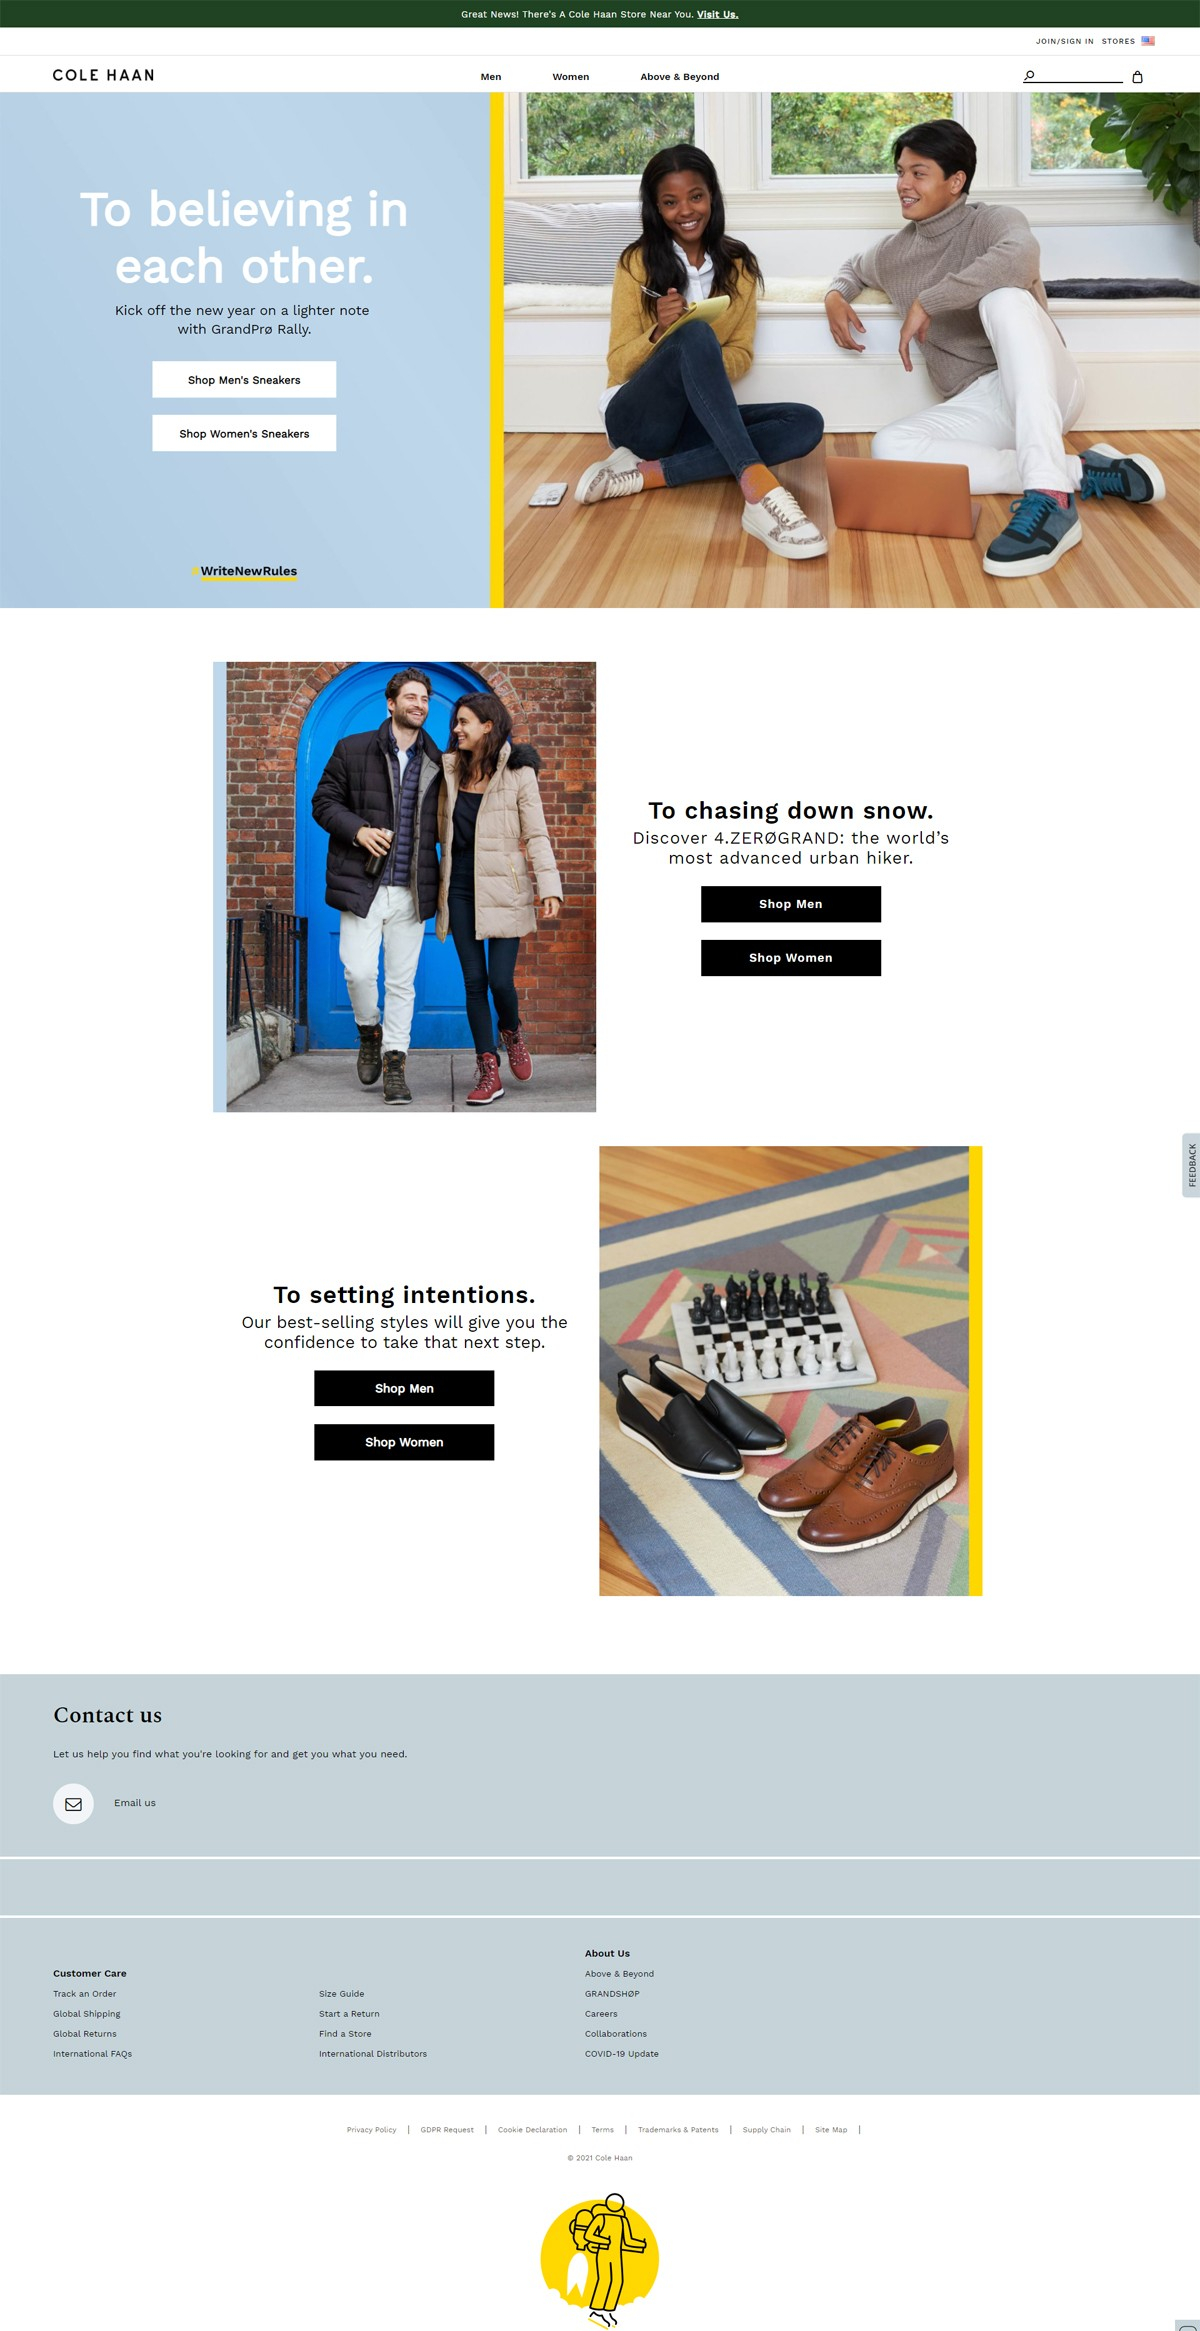 eCommerce website: Cole Haan